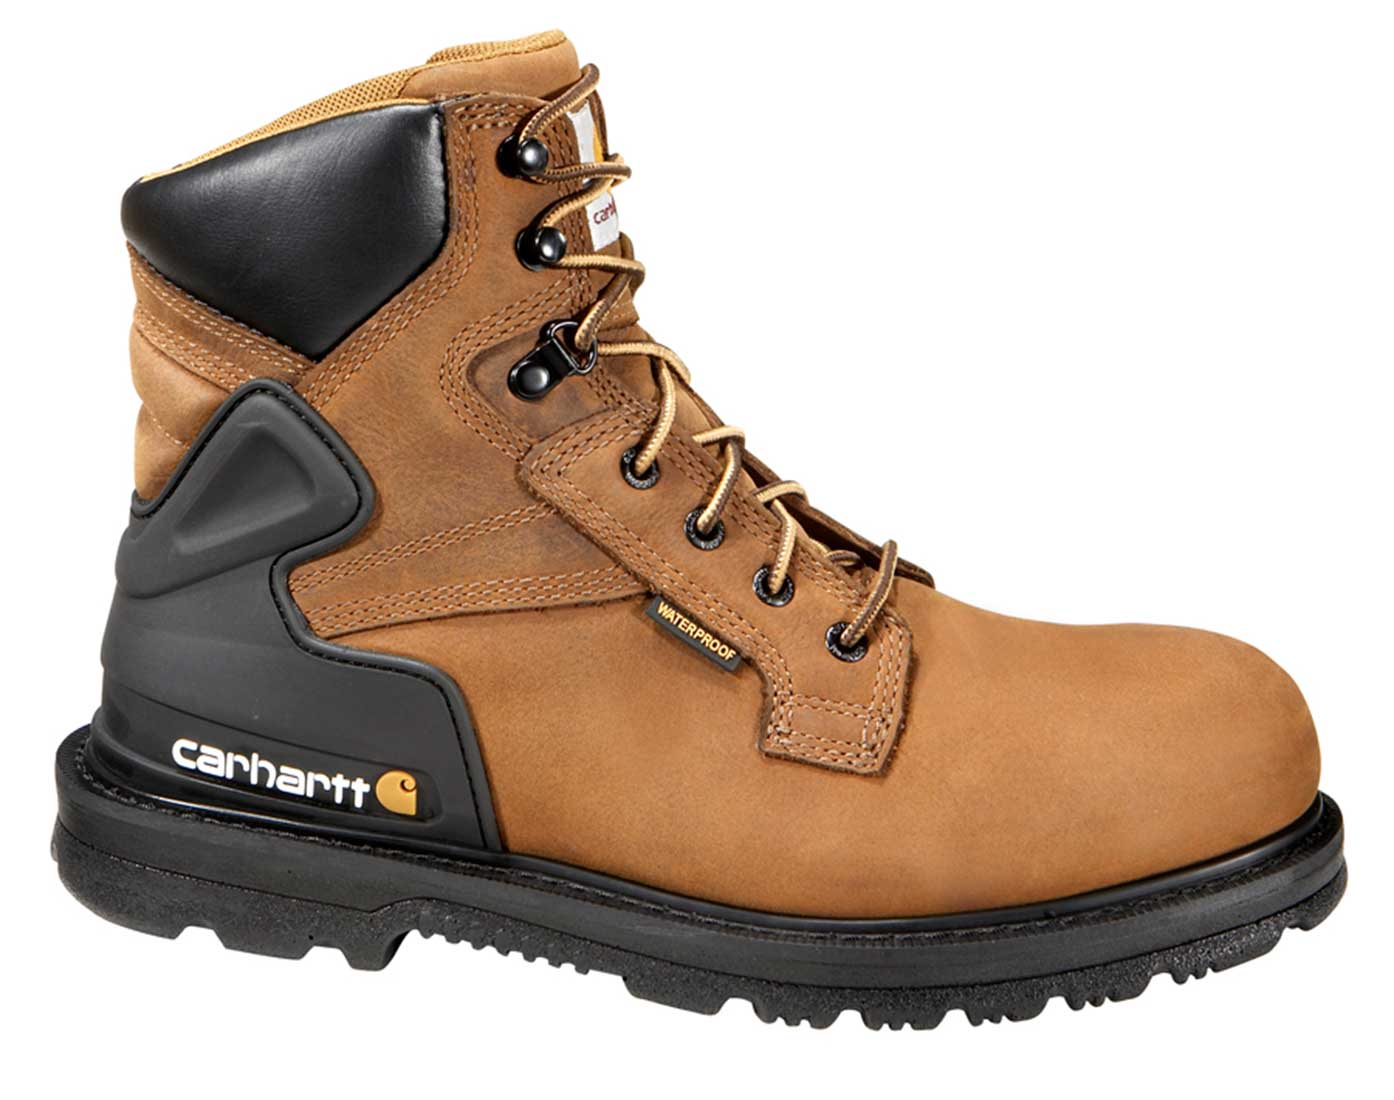 Carhartt Core Men's Bison Brown Leather Waterproof Soft Toe 6-inch lace-up Work Boot